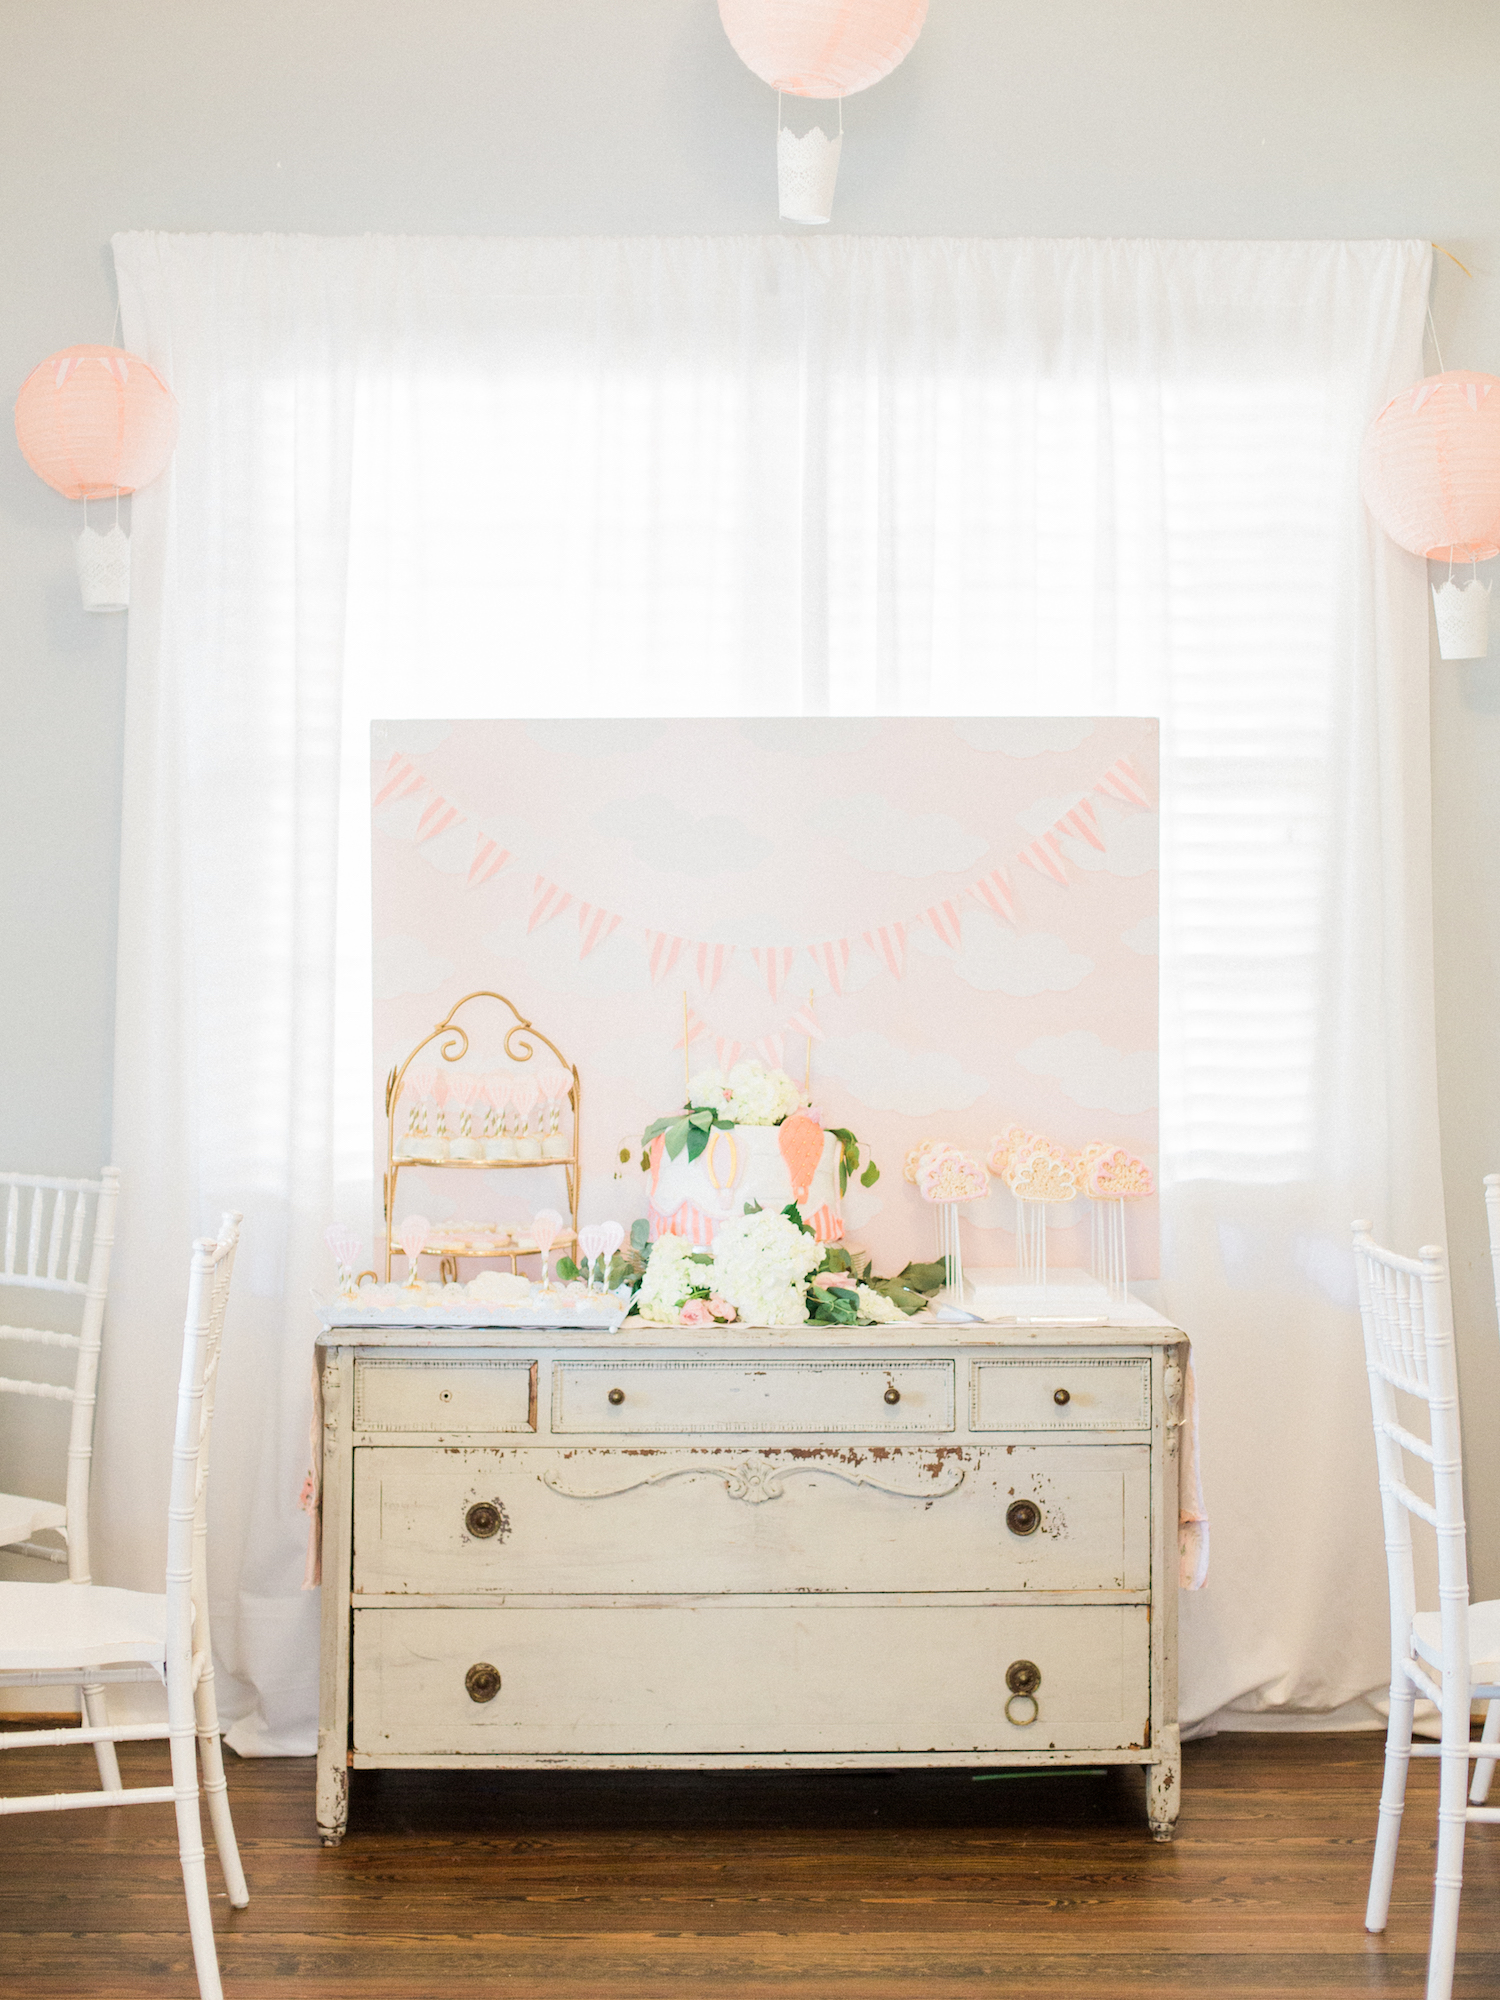 White chiavari chairs. Feminine travel themed baby shower at The Gilbert House with hot air balloon decor, cake, and cookies. Antique event rentals. Baby shower at The Gilbert House. Photography by Kesia Marie Photography Atlanta Fine Art Event Photographer